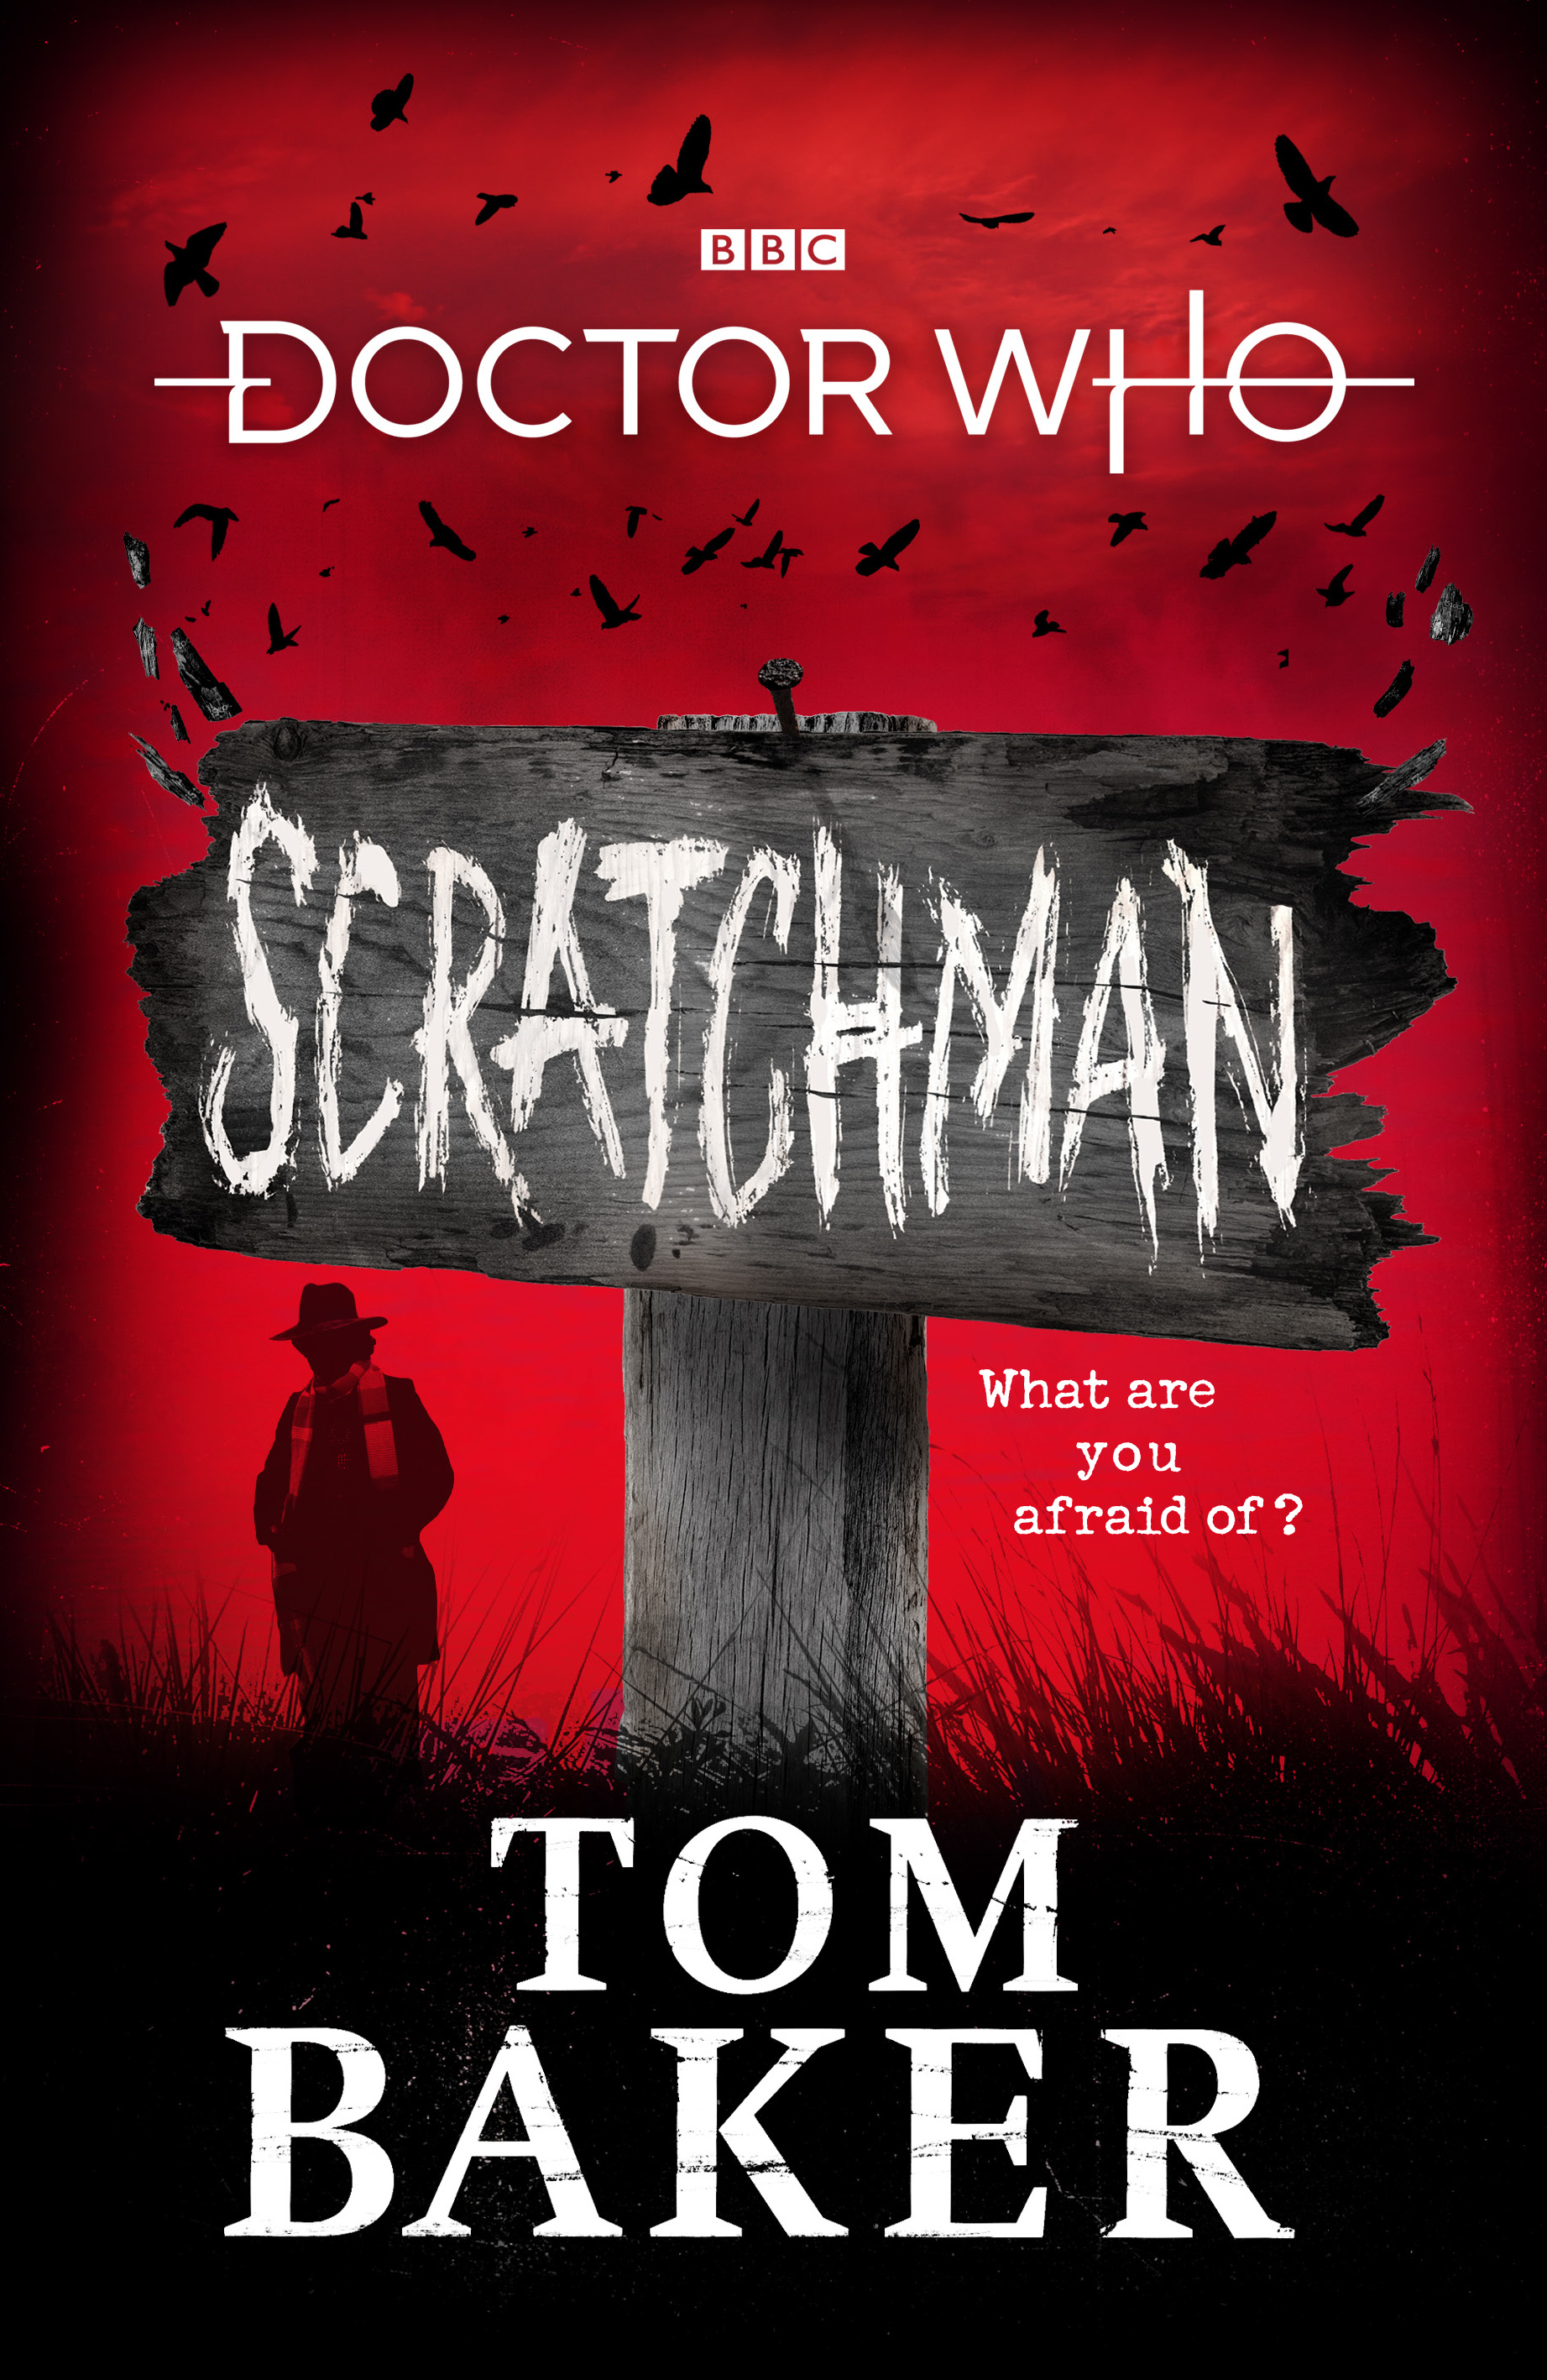 Scratchman, by Tom Baker (BBC Books) (Credit: BBC Books)